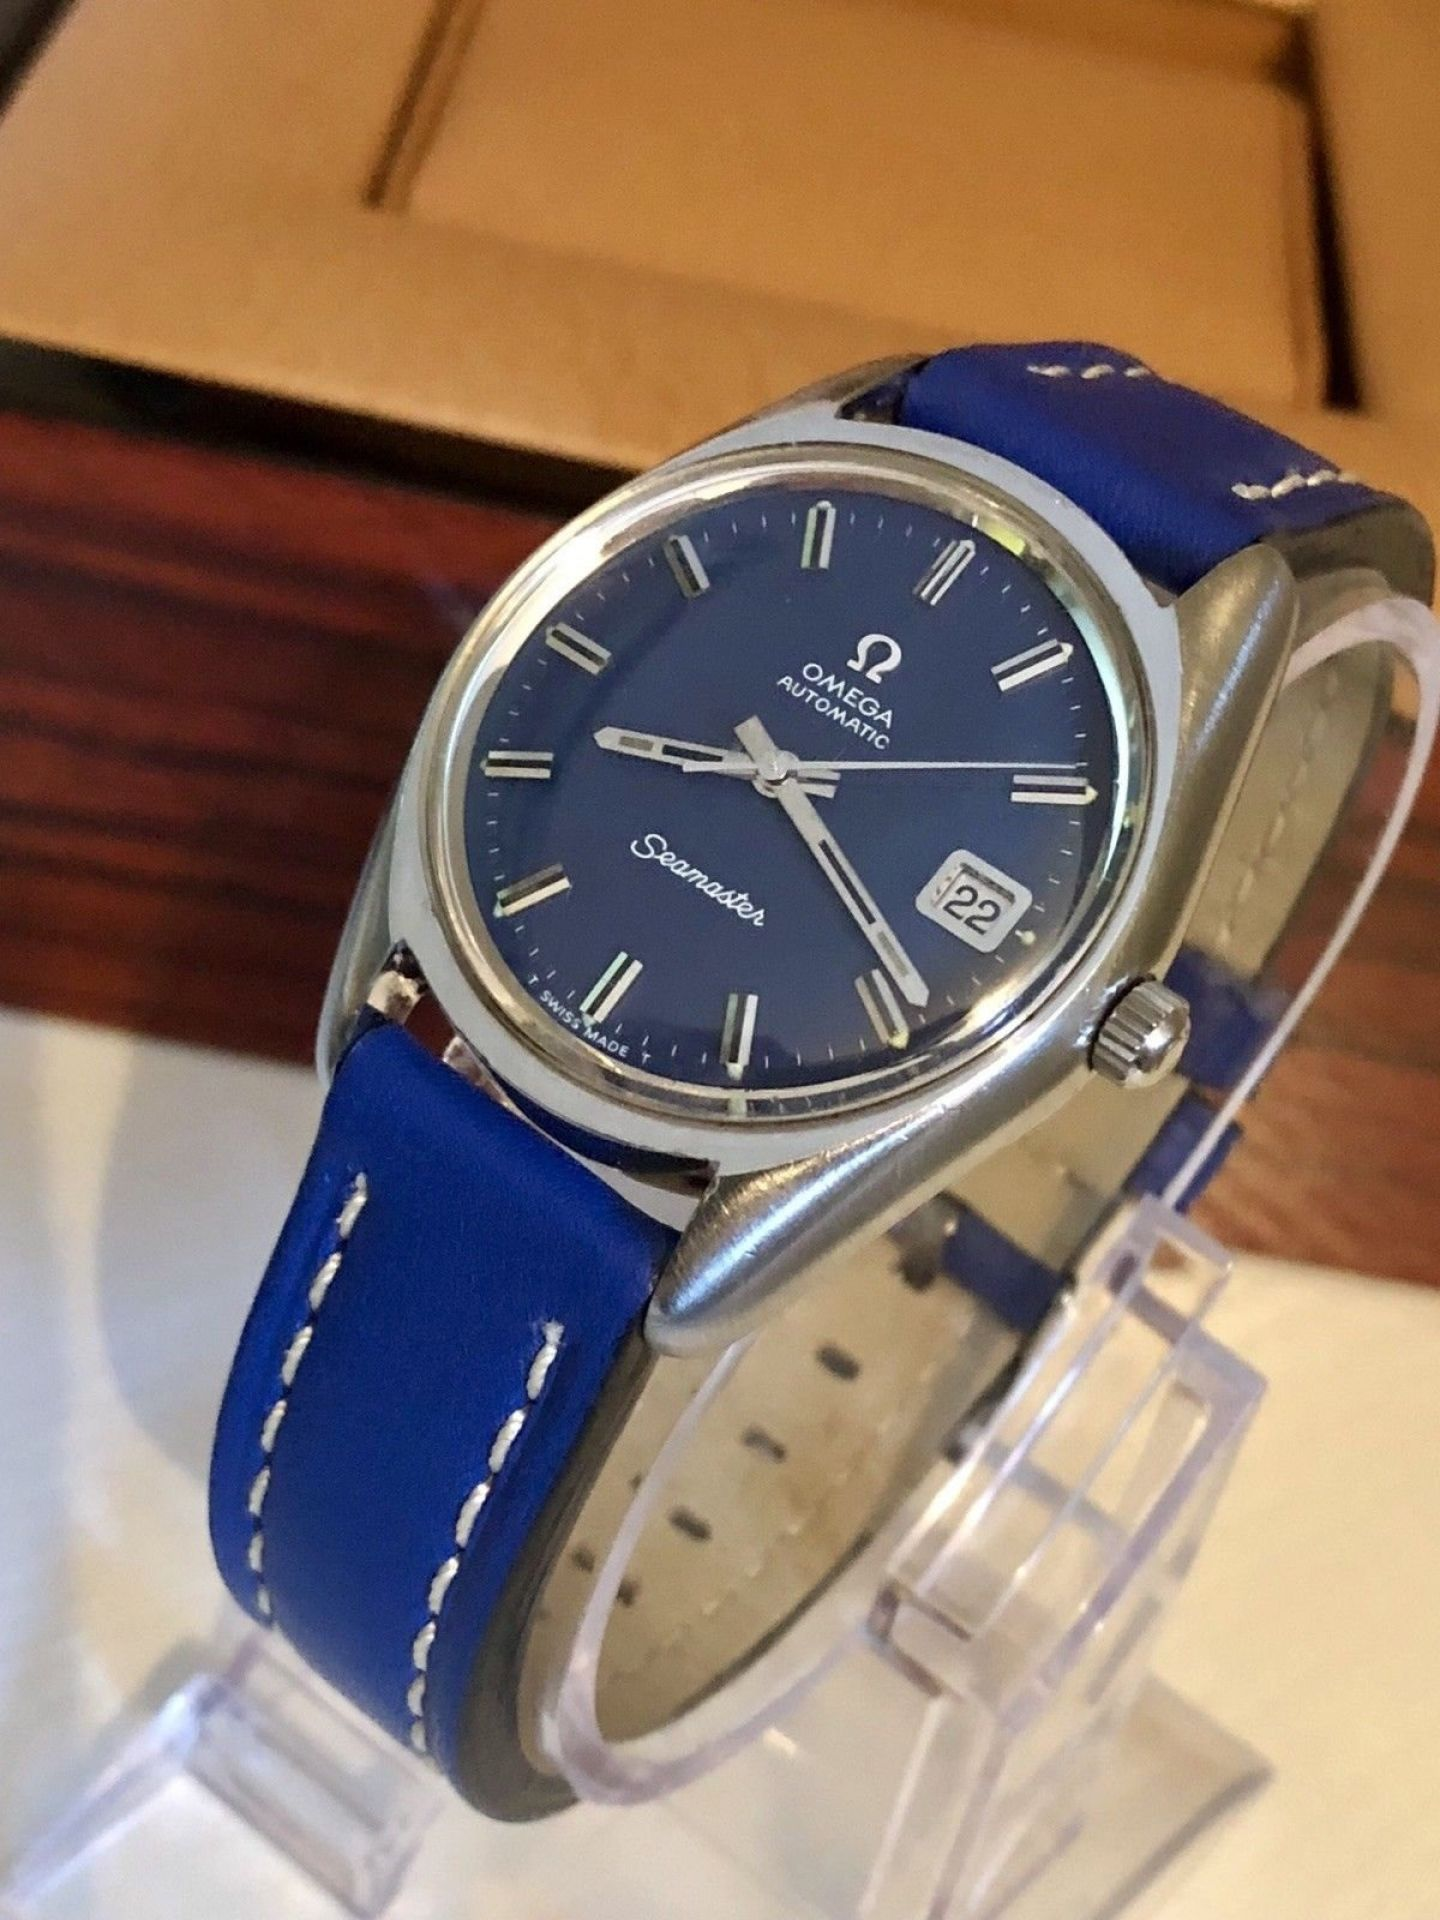 OMEGA SEAMASTER AUTOMATIC CAL 565 DATE BLUE DIAL FACE VINTAGE MENS 1971 WATCH